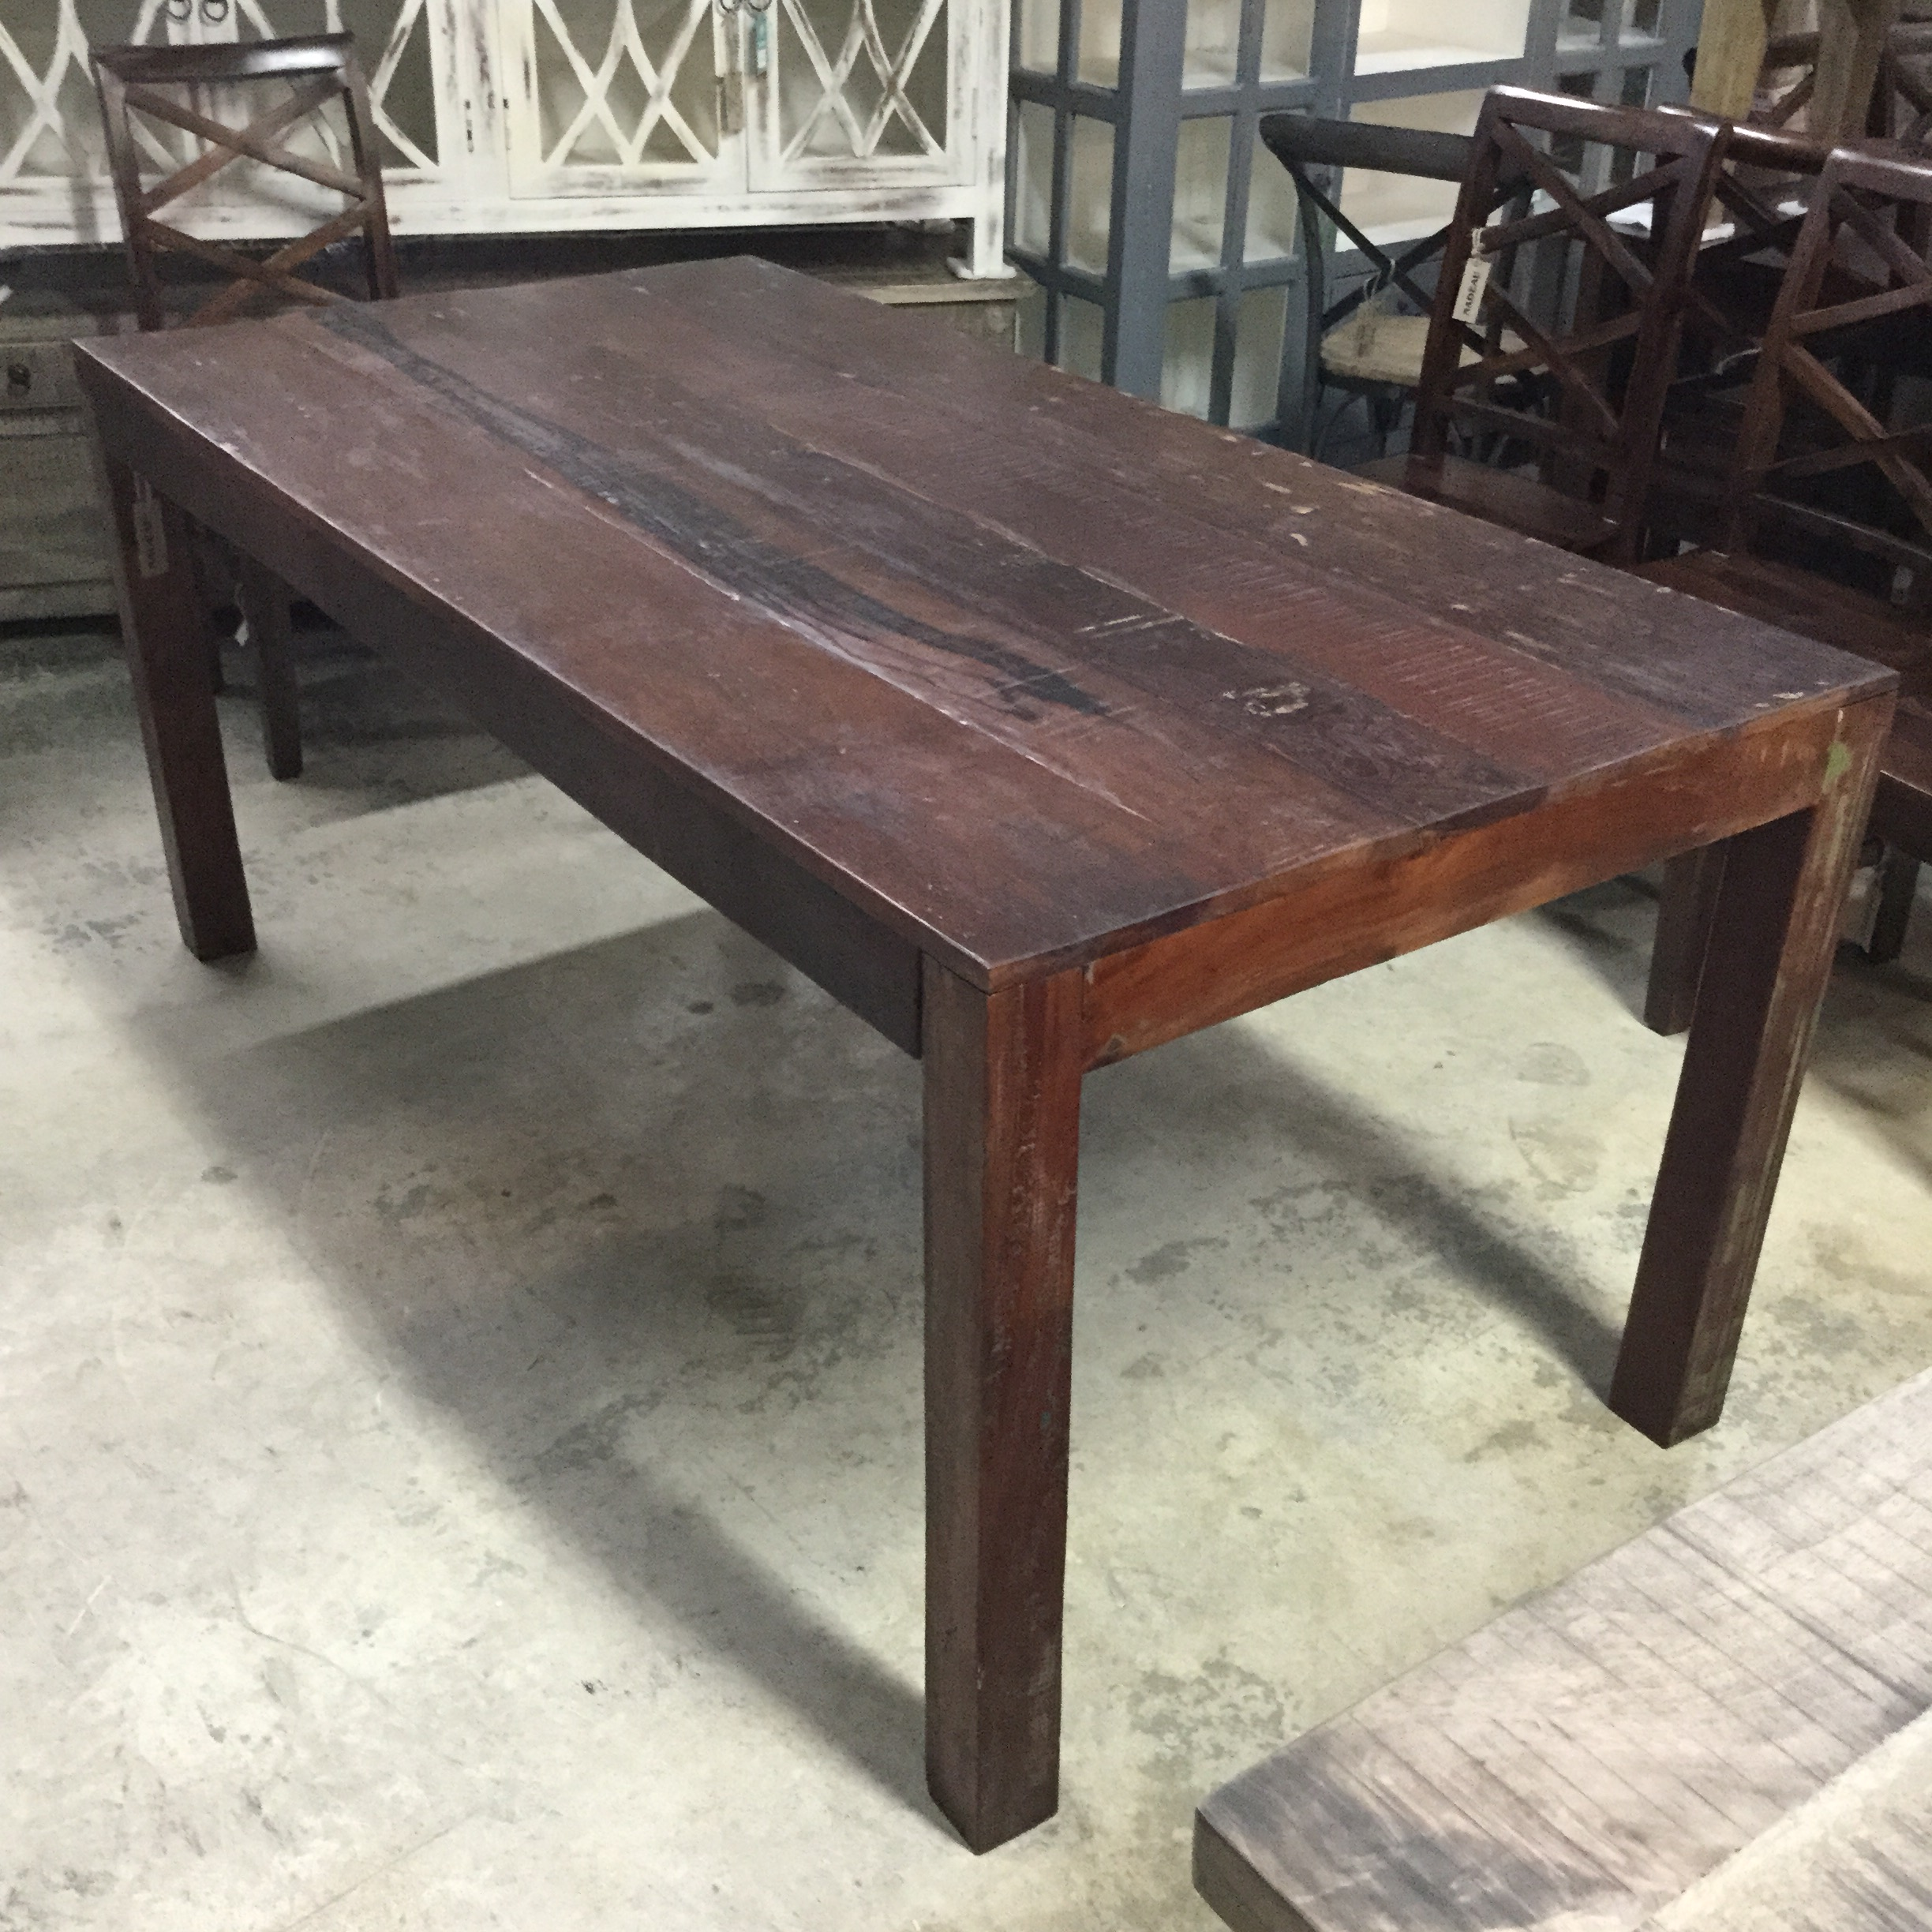 Reclaimed wood dining table nadeau miami for Portland reclaimed wood furniture